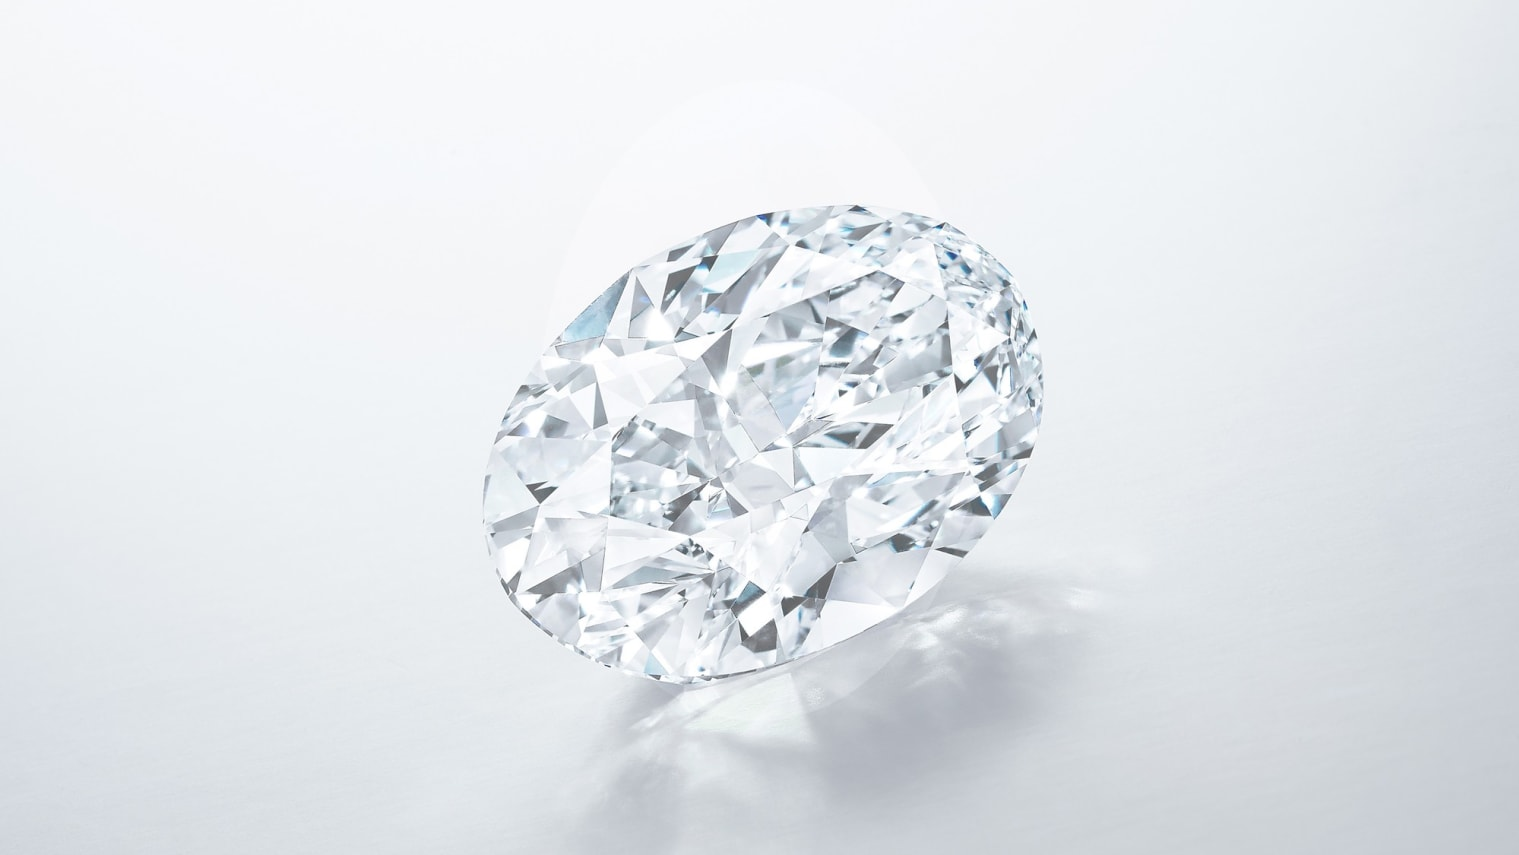 An exceptionally rare 102-carat diamond may become one of the most expensive stones ever to sell at auction when it goes under the hammer in Hong Kong in October 2020.